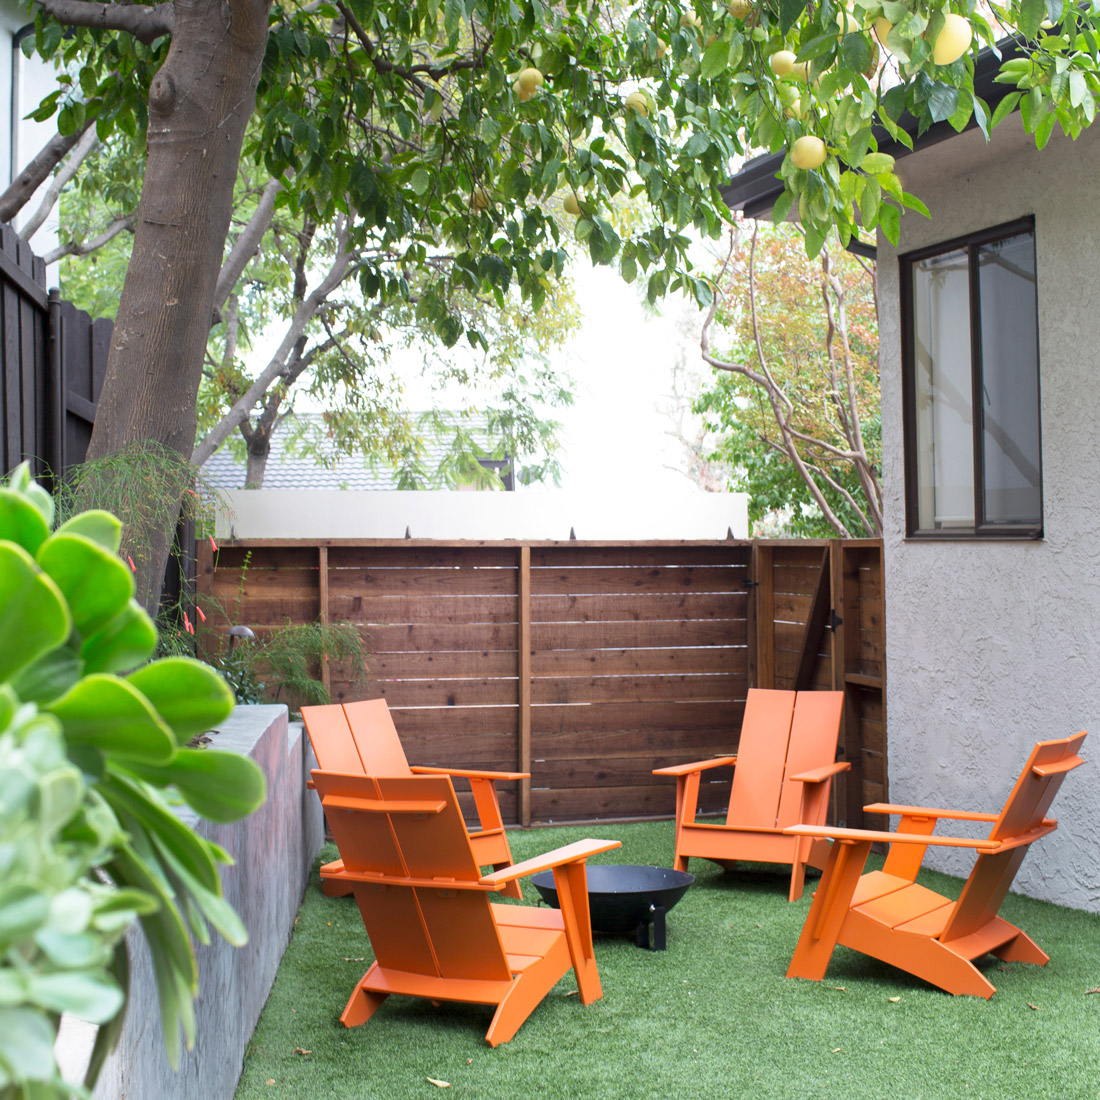 modern adirondack chairs around a fire bowl in a backyard grassy area orange plastic is easy to maintain with concrete retaining wall design by sara bates interior design